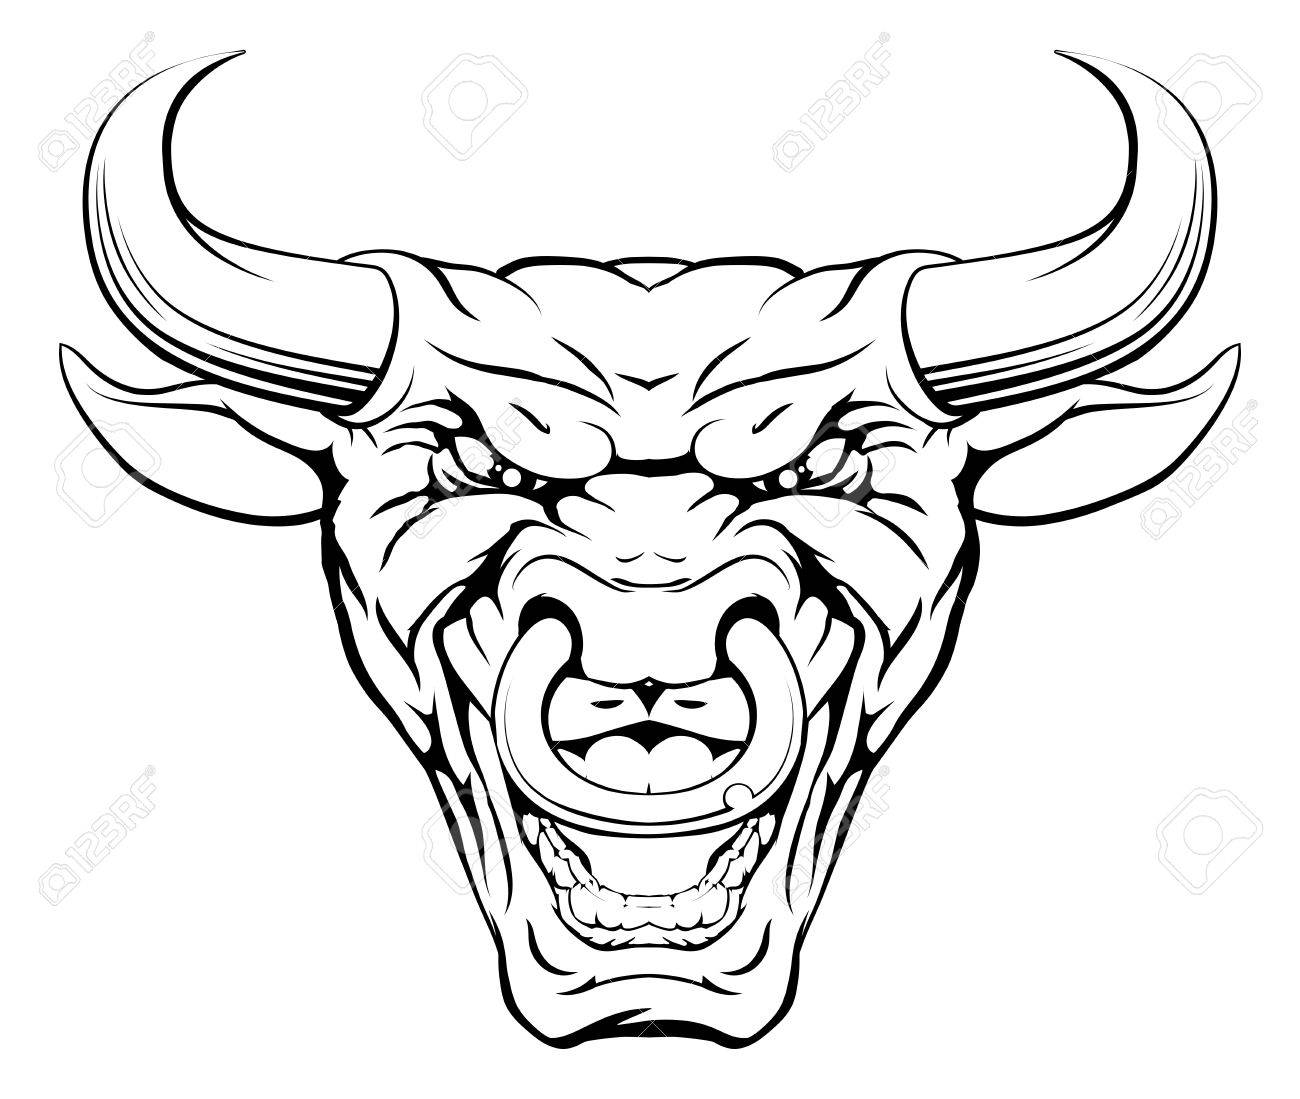 1300x1099 A Mean Looking Bull Mascot Character With A Ring Through Its